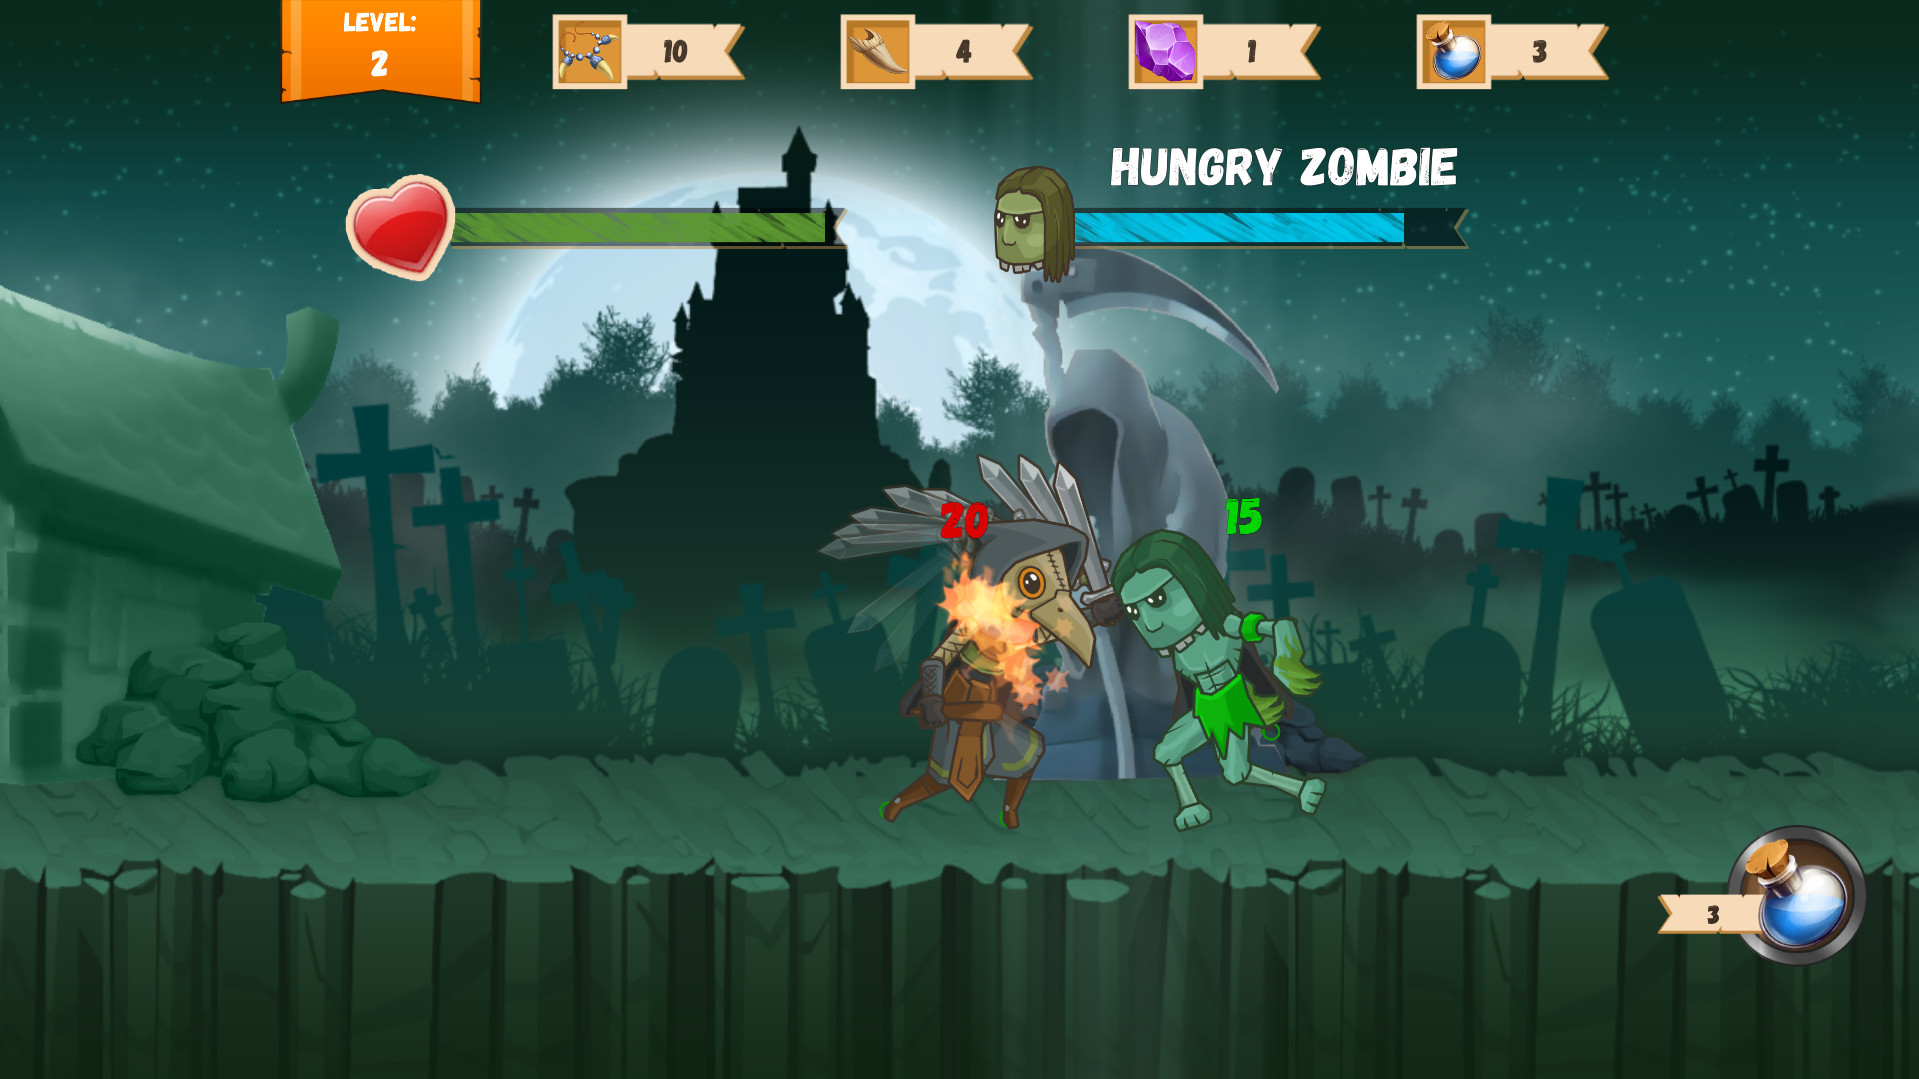 Caves of Plague for PC screenshot